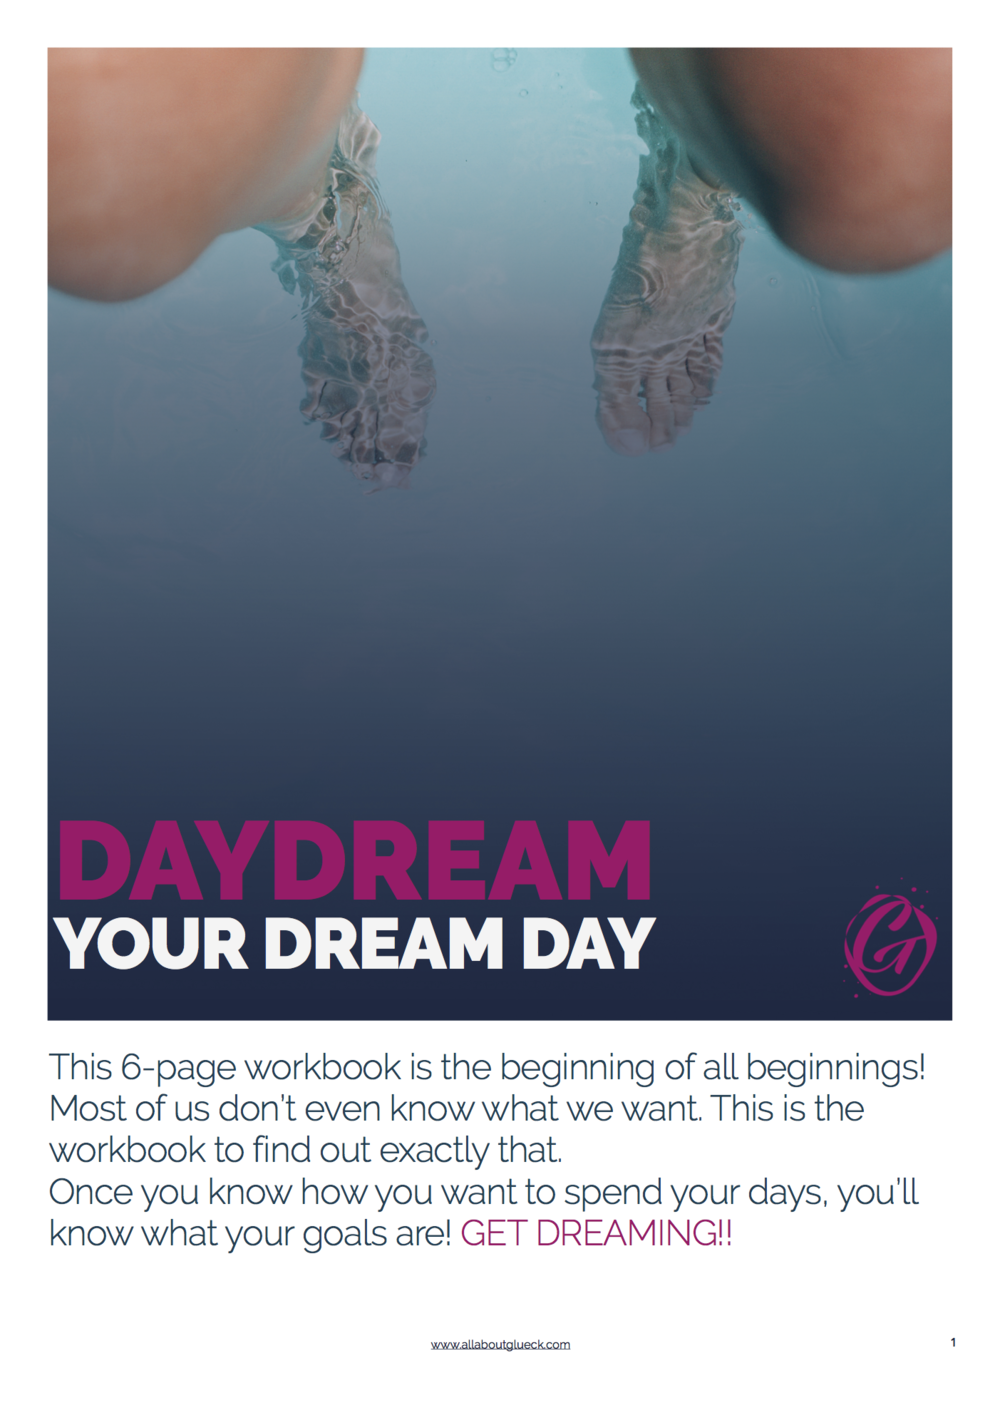 Daydream your dream day.png